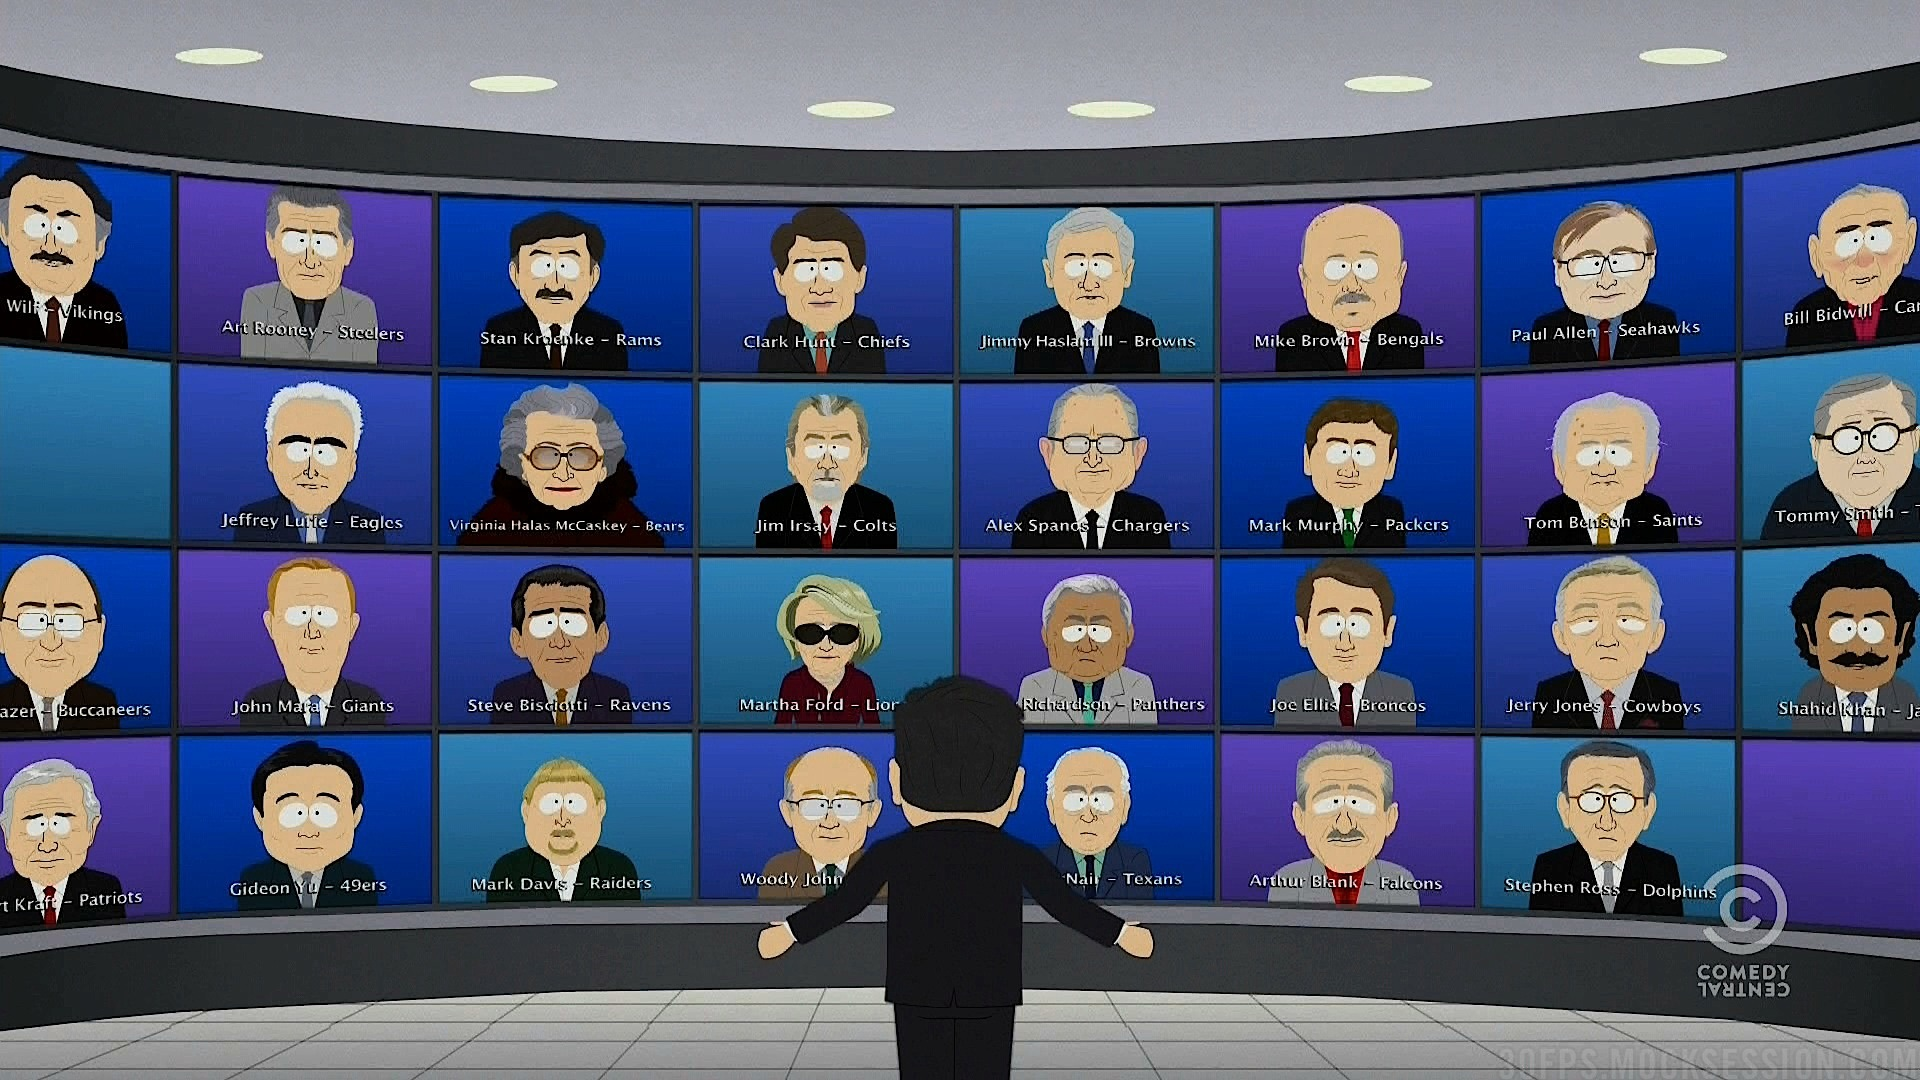 32 nfl owner by south park...